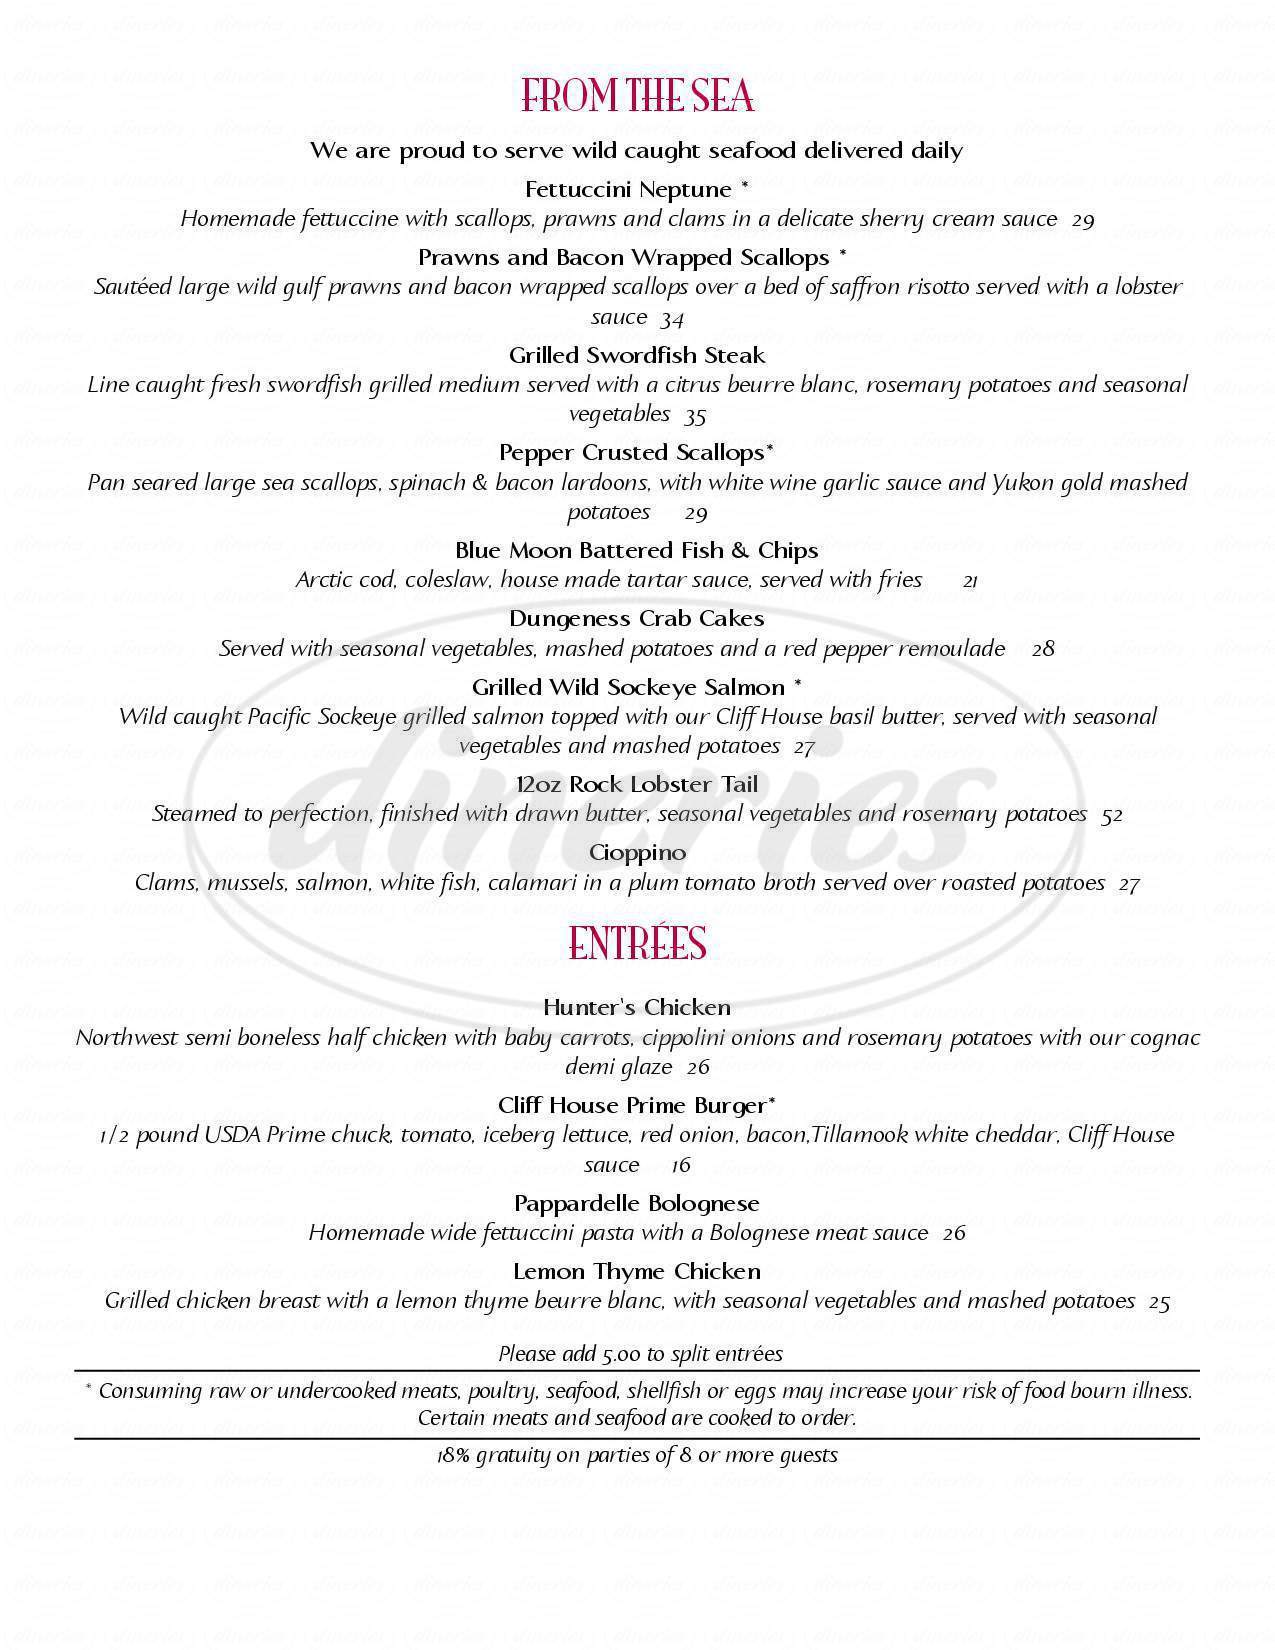 menu for The Cliff House